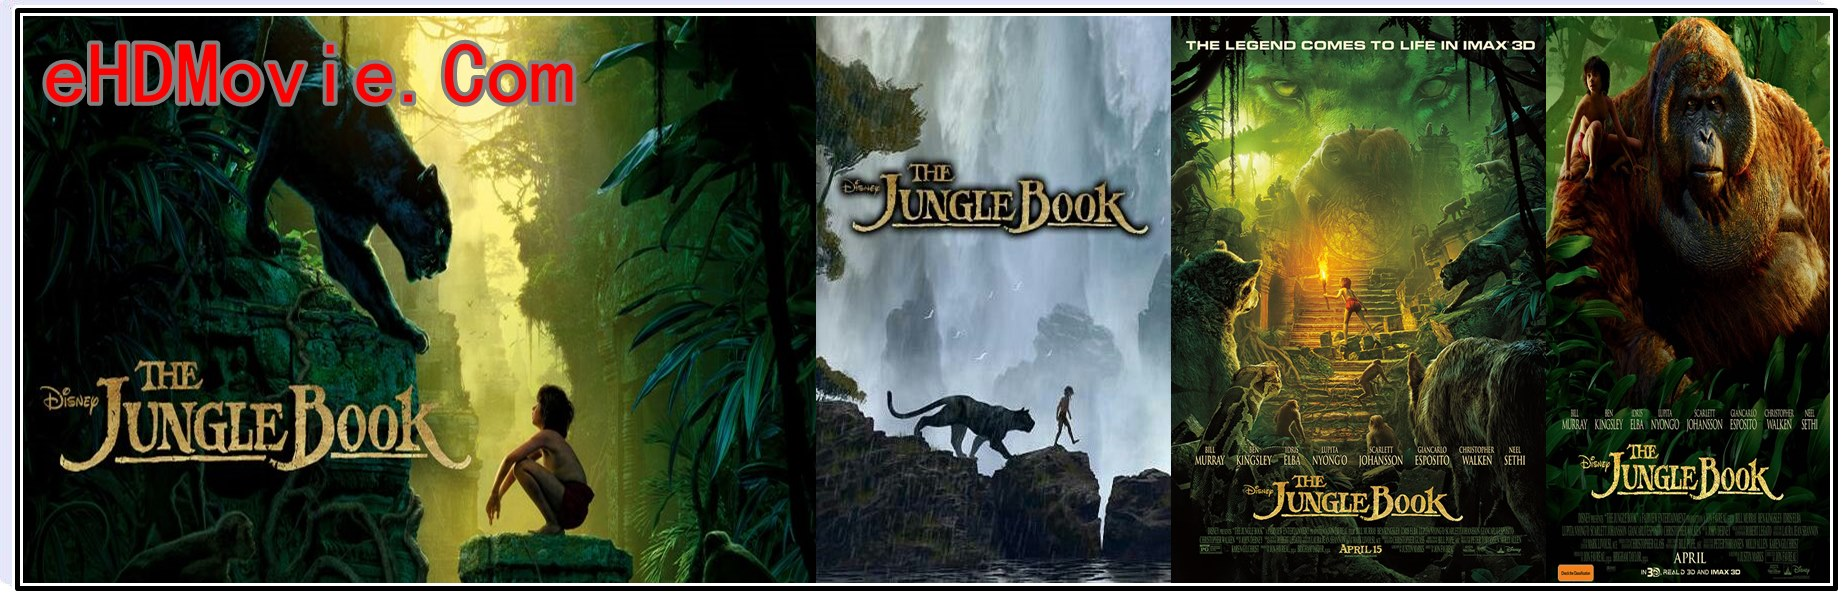 The Jungle Book 2016 Full Movie Dual Audio [Hindi – English] 720p - 480p ORG BRRip 350MB - 800MB ESubs Free Download